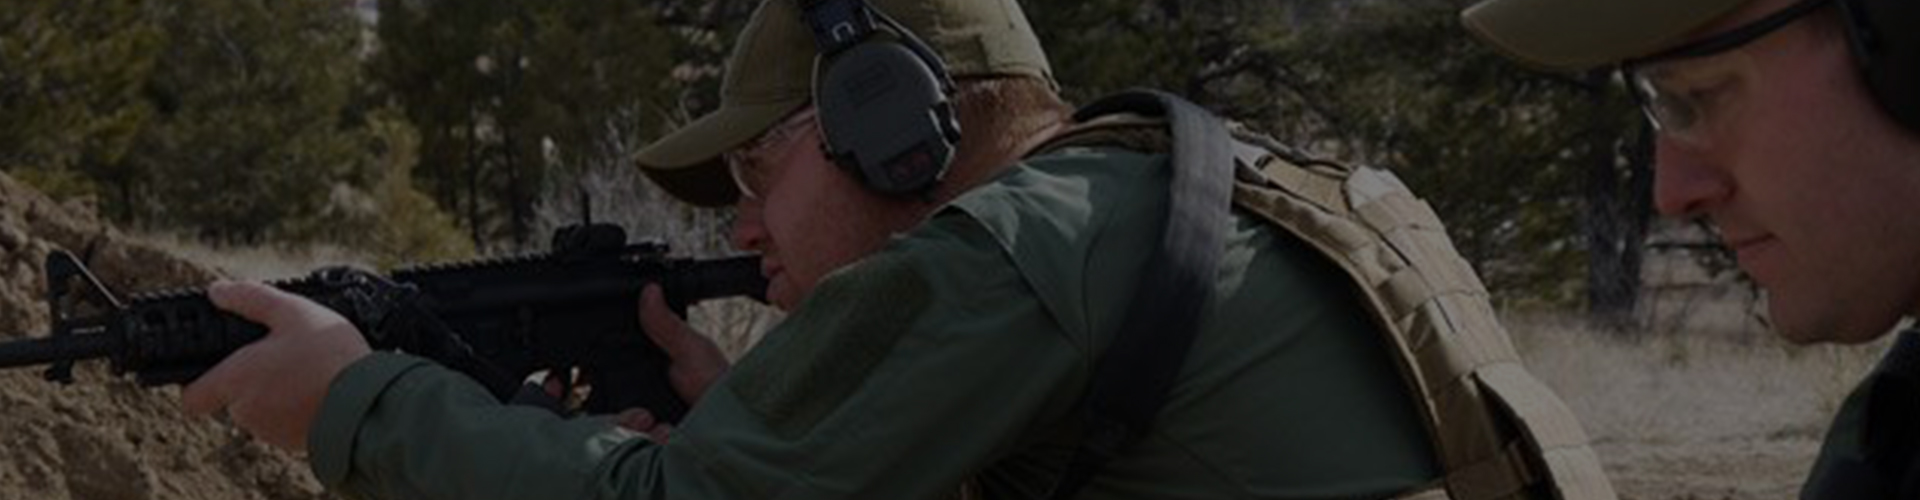 California Concealed Carry Weapons Course | OC Firearms Academy